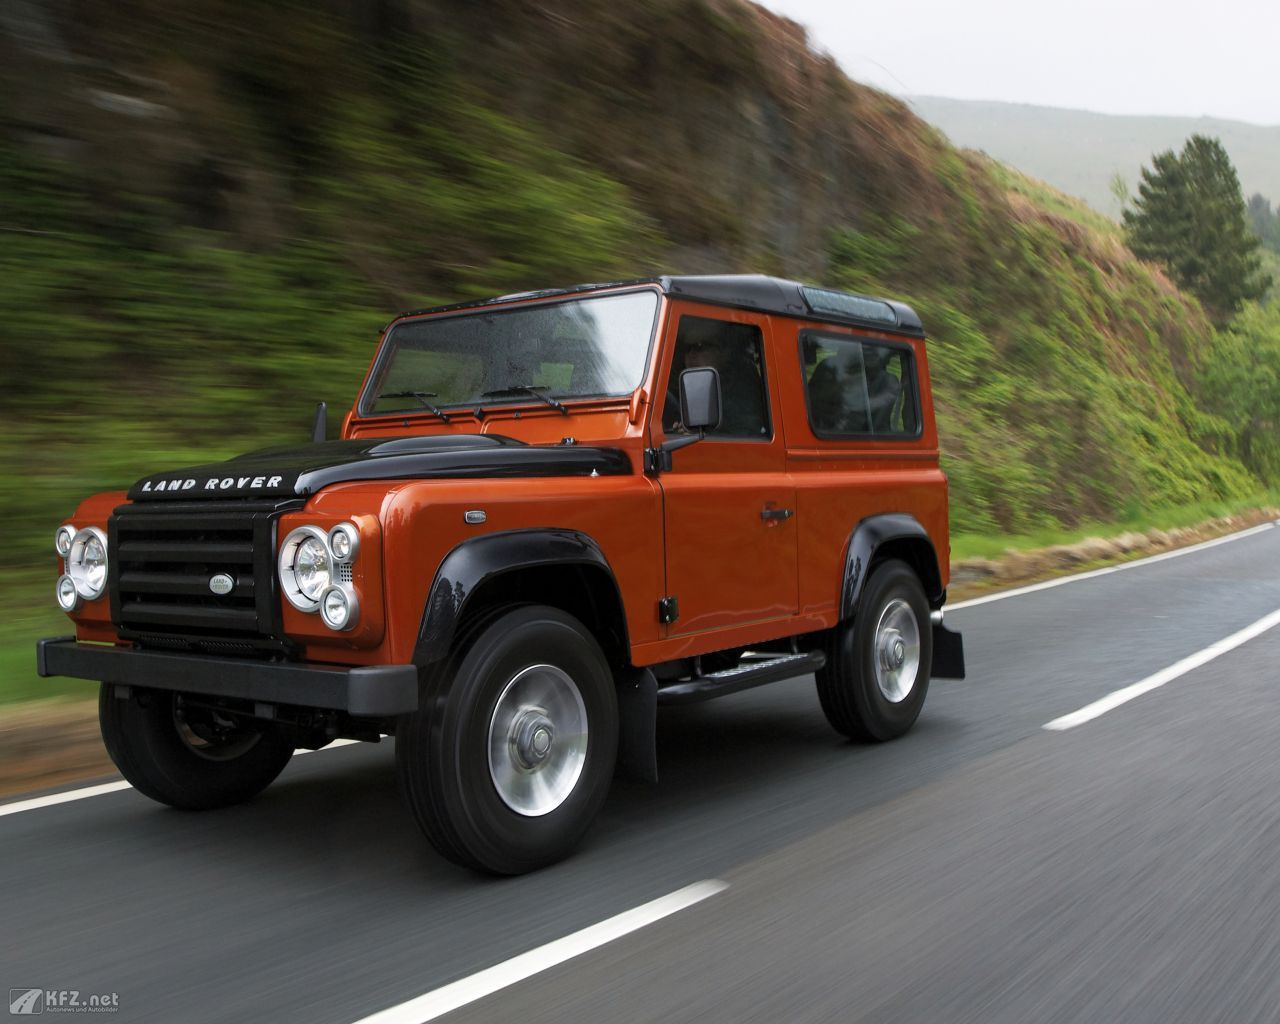 land-rover-defender-1280x1024-3